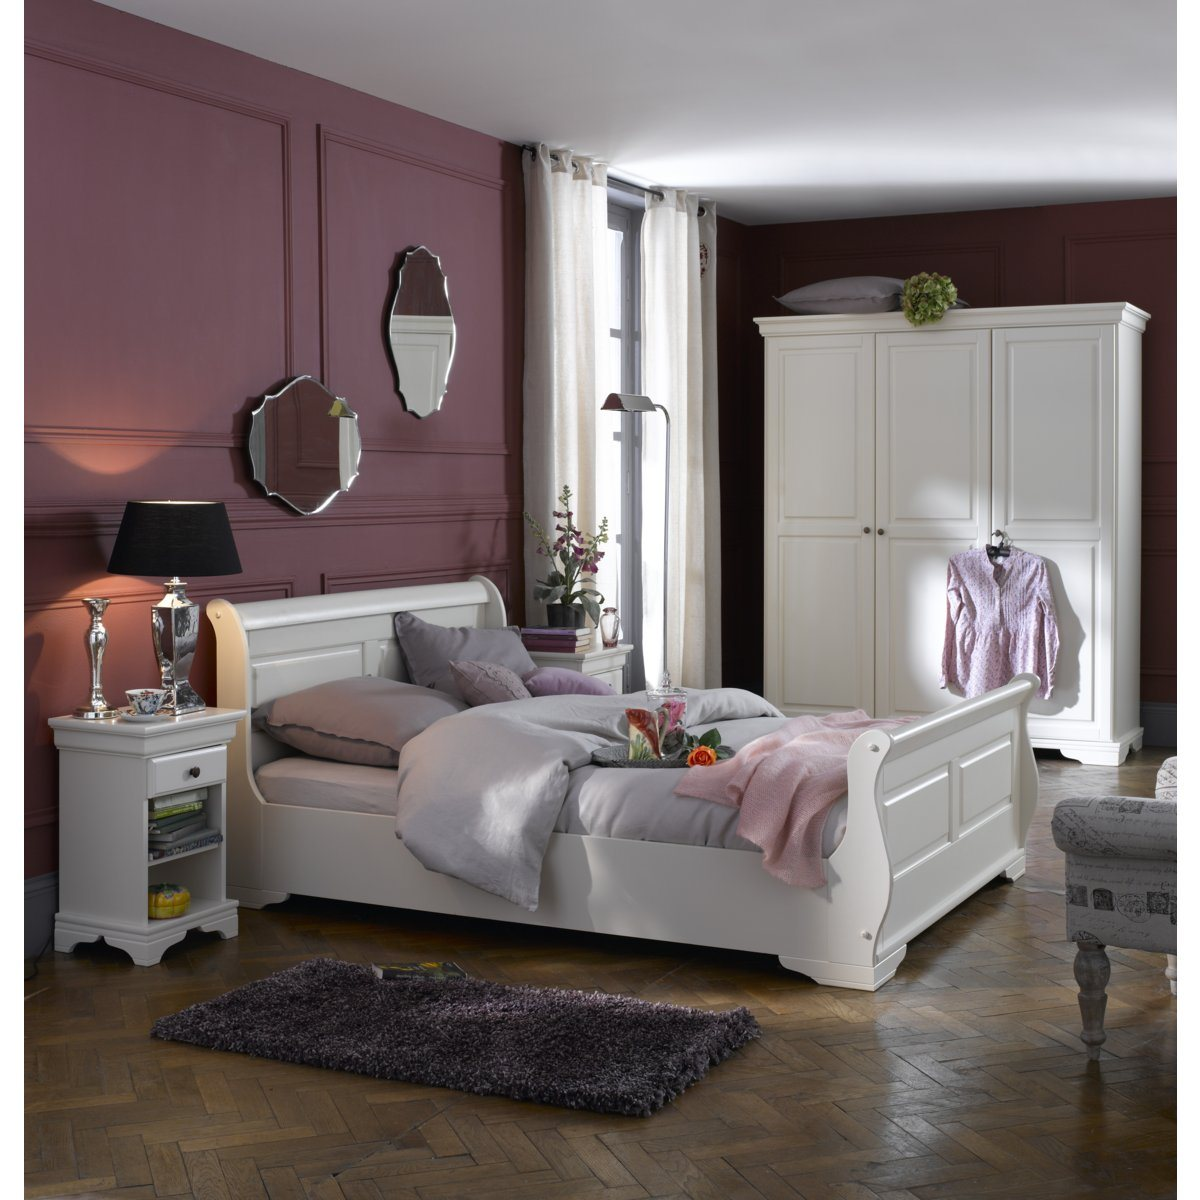 chambre couleur chambre ado voyageur couleurs la redoute. Black Bedroom Furniture Sets. Home Design Ideas